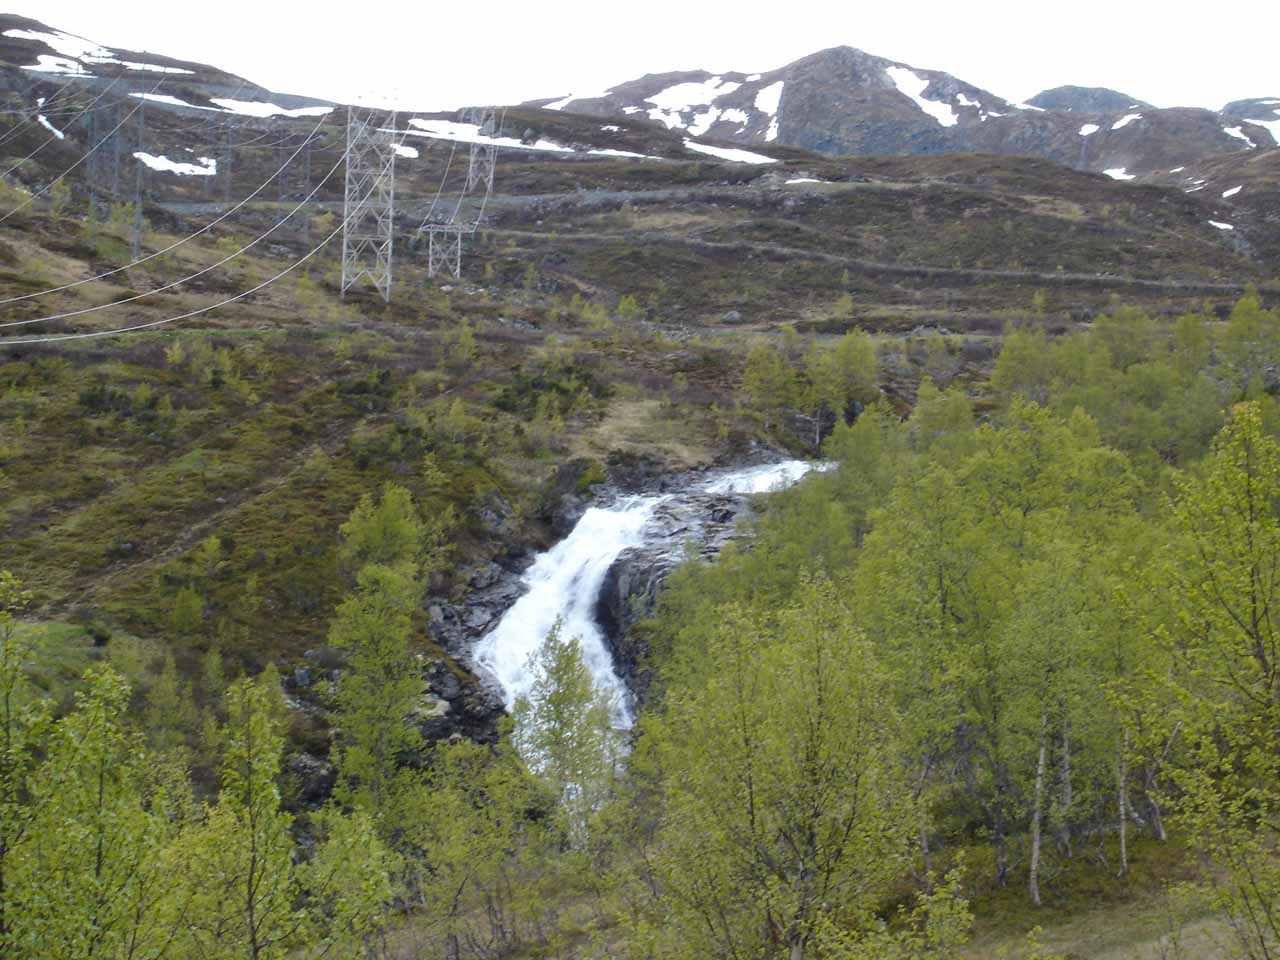 This gushing waterfall beneath the power lines might be what Norgesglasset called Brekkefossen